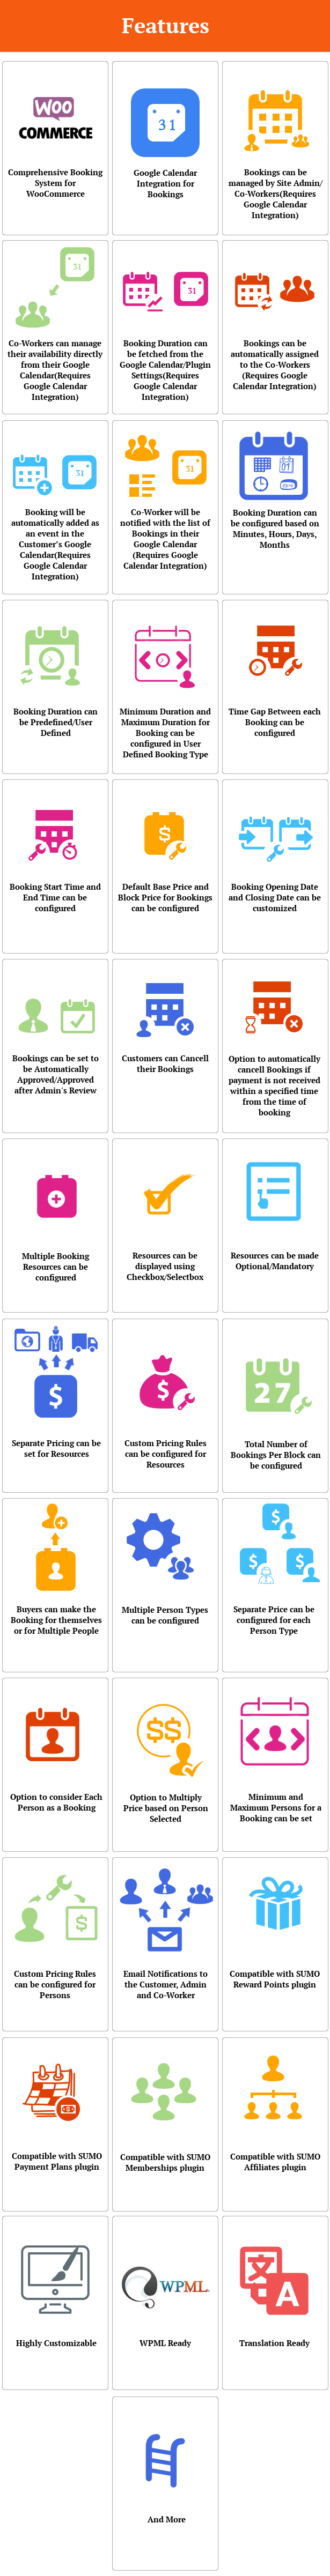 sumo_bookings_features_infographics_image